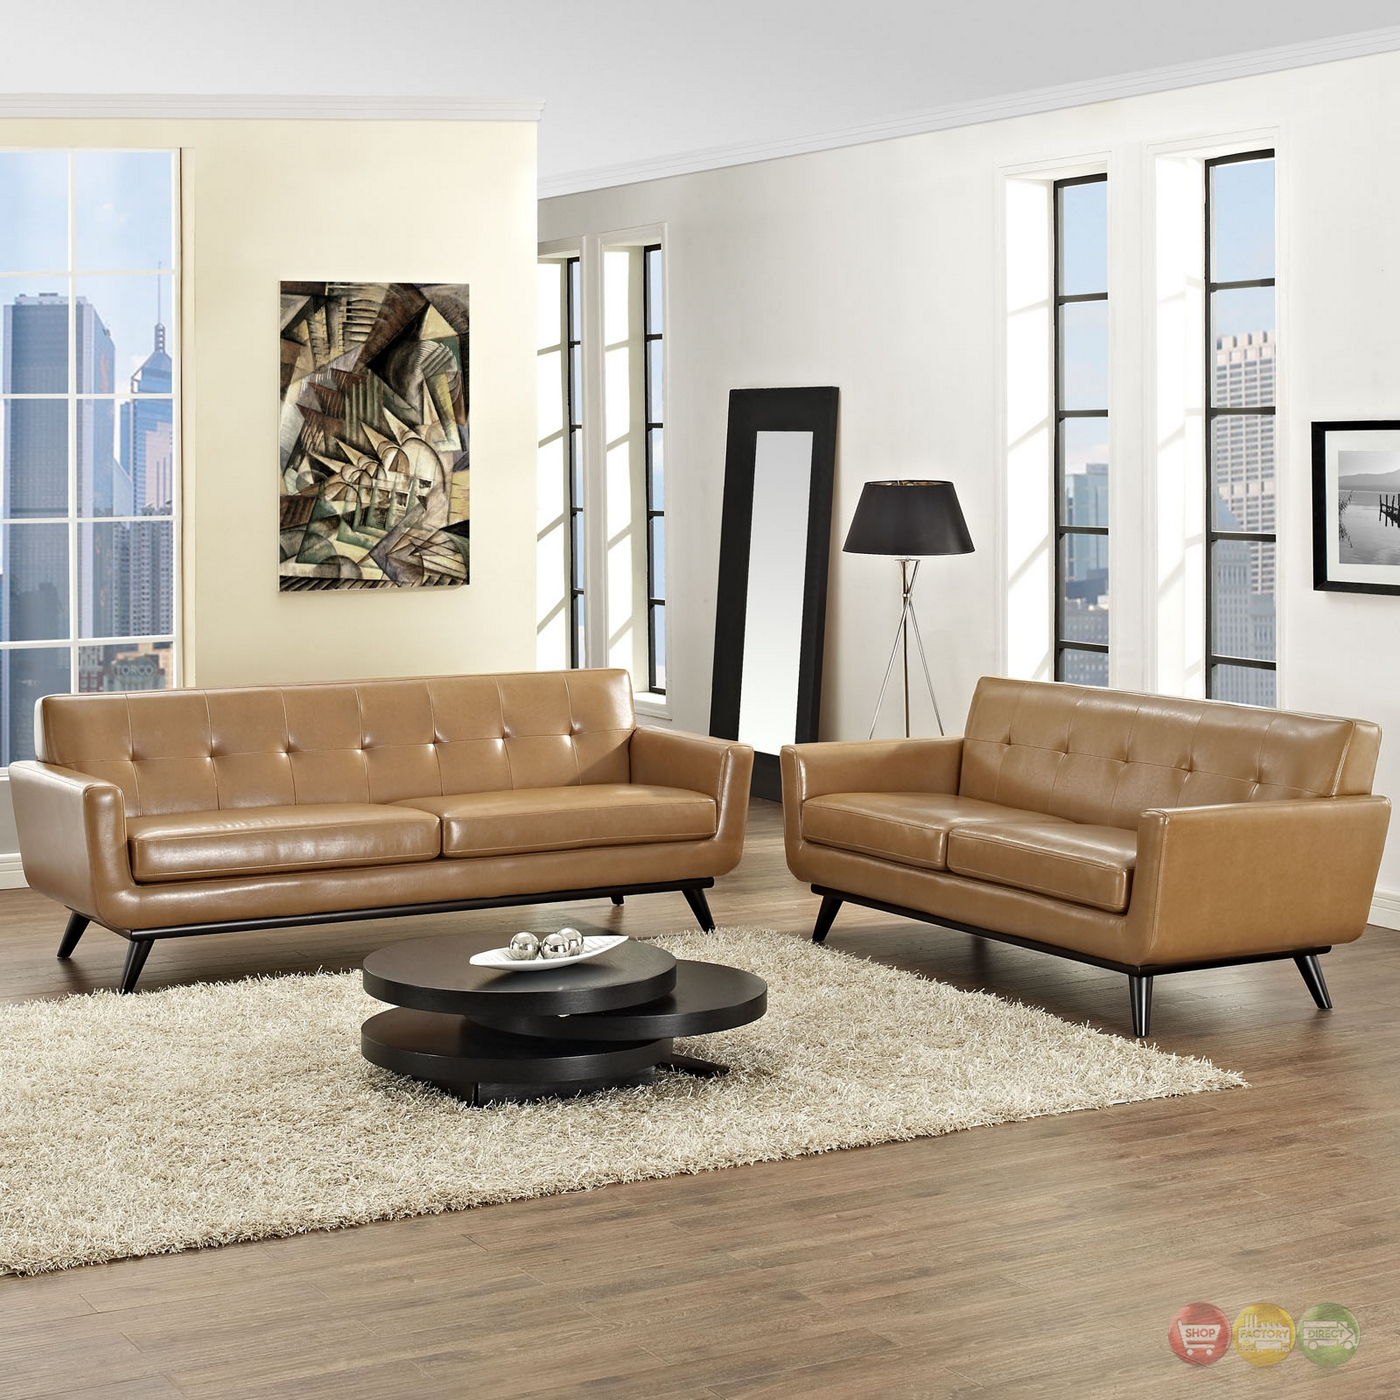 engage contemporary 2pc button tufted leather living room set tan. Black Bedroom Furniture Sets. Home Design Ideas